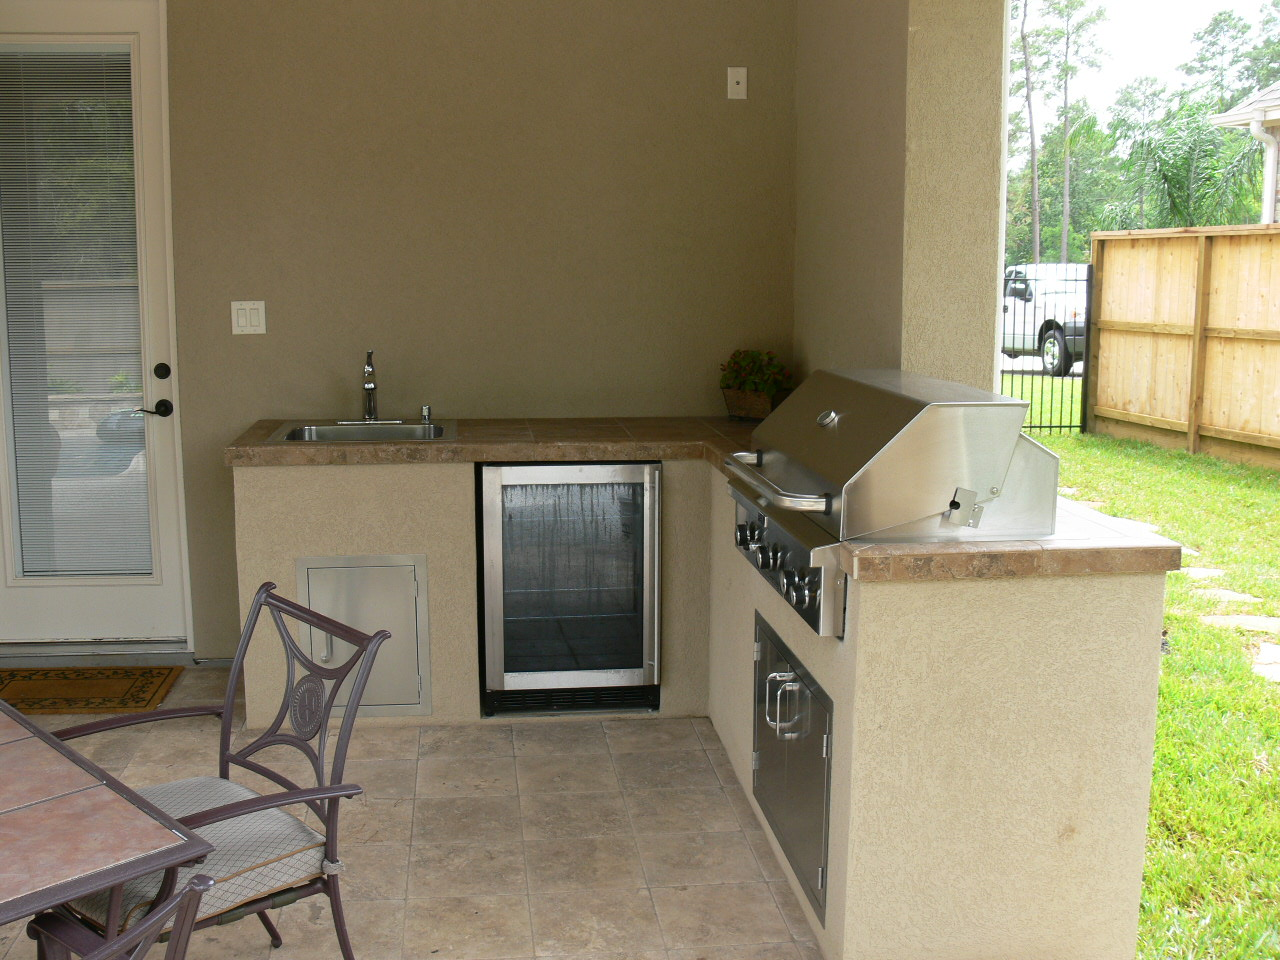 Outdoor Kitchen2.JPG